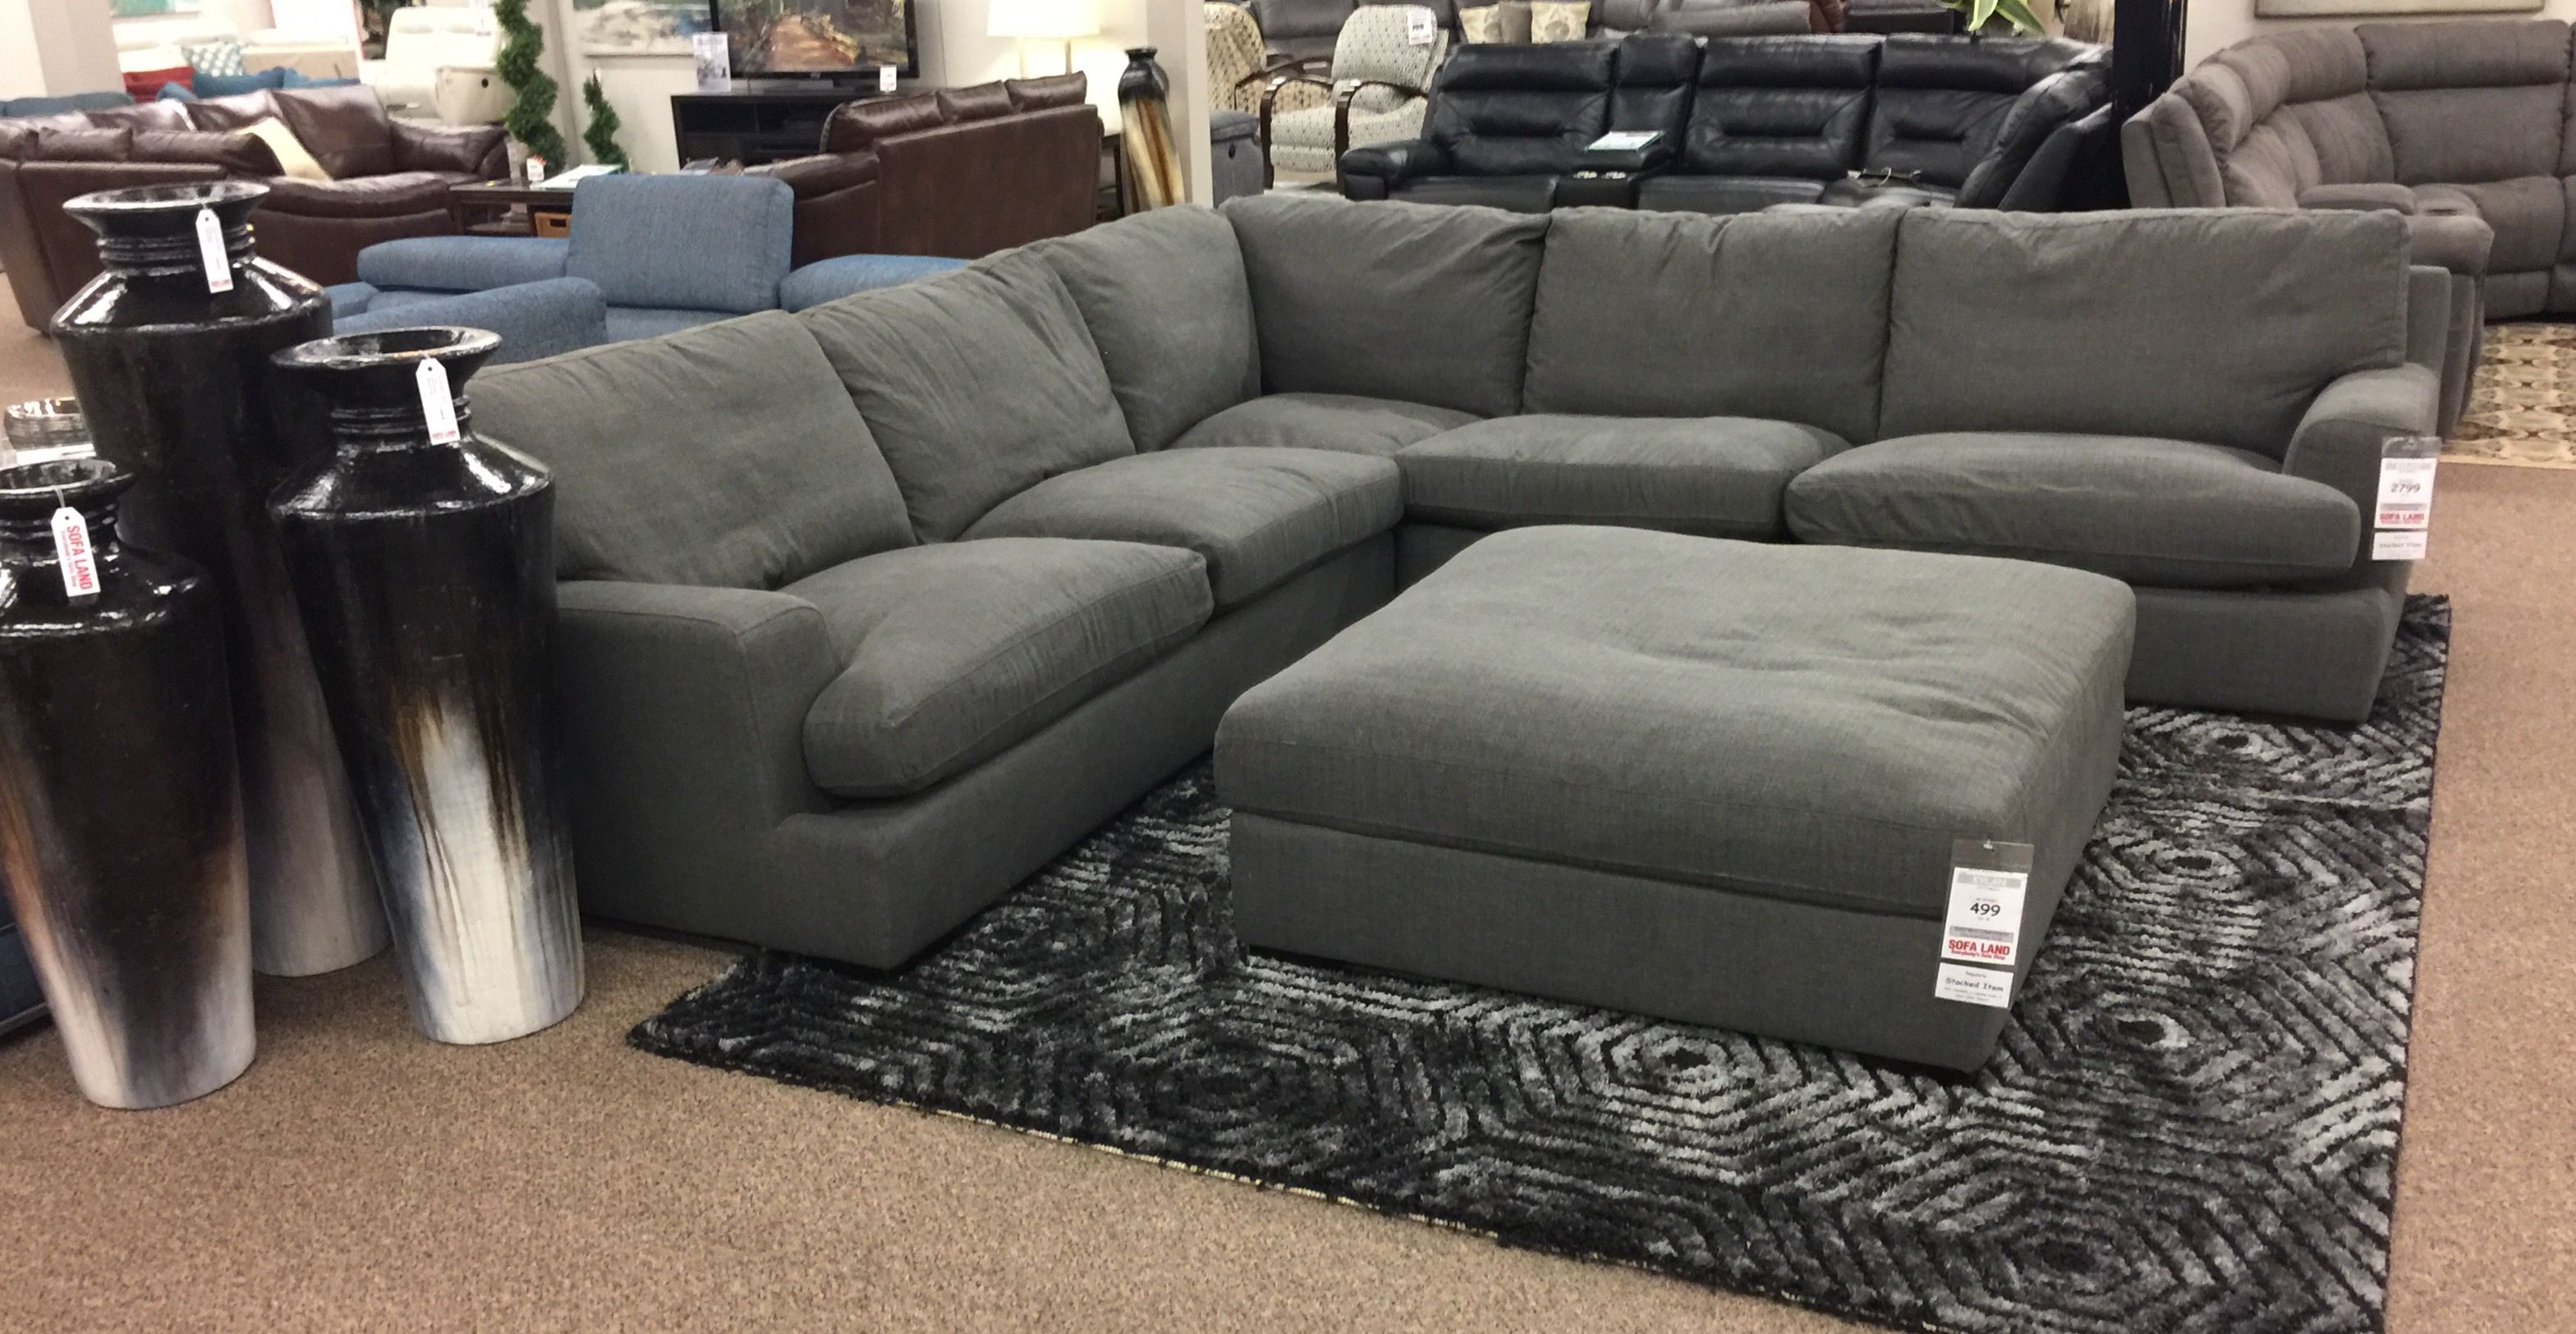 Sofaland Sectional Nap Time Our Kylan Sectional Provides Just The Right Environment